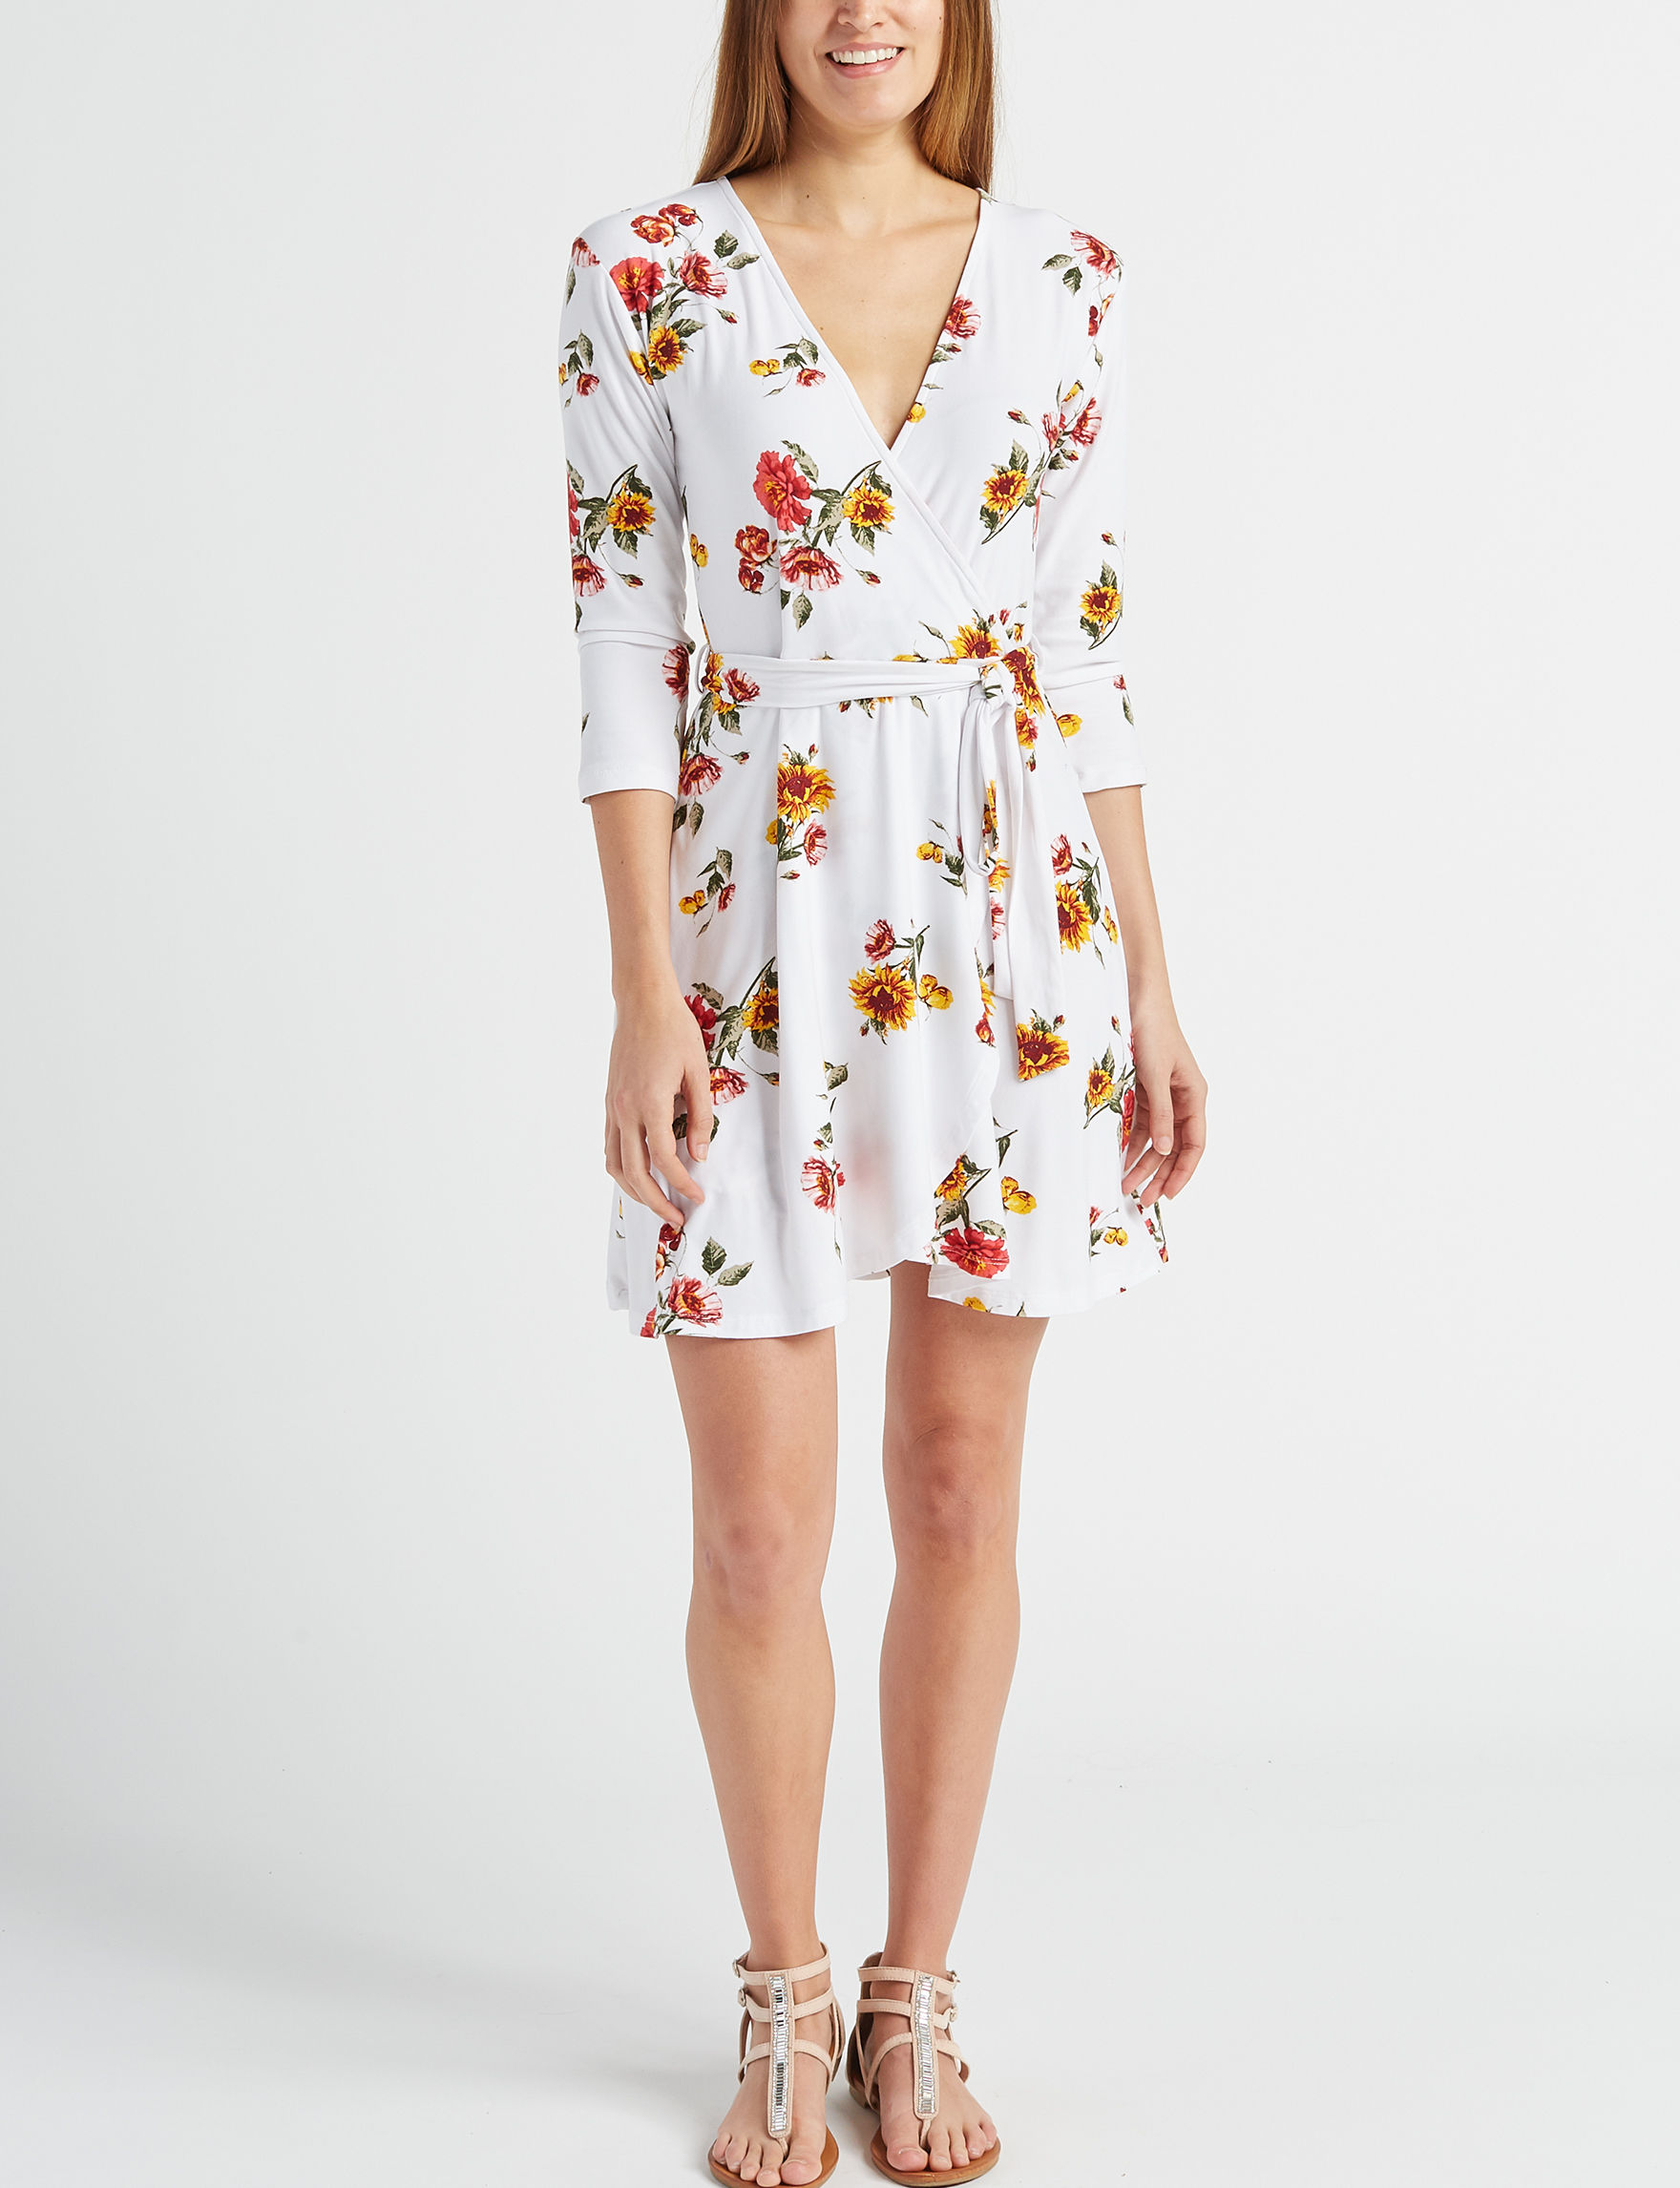 Wishful Park Ivory Everyday & Casual Fit & Flare Dresses